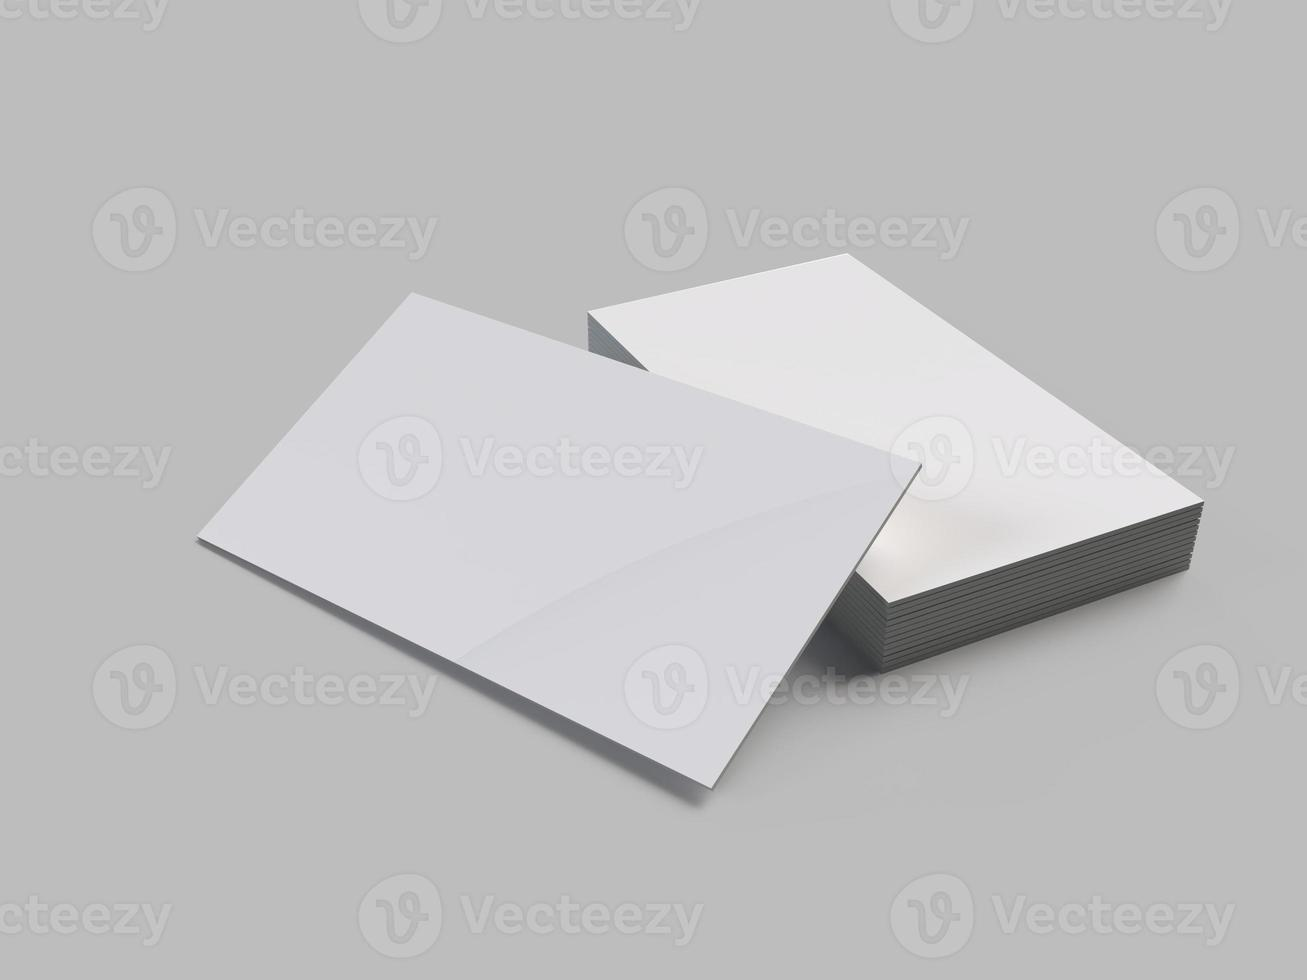 3D business card mock-up US 3.5 x 2 inch size photo